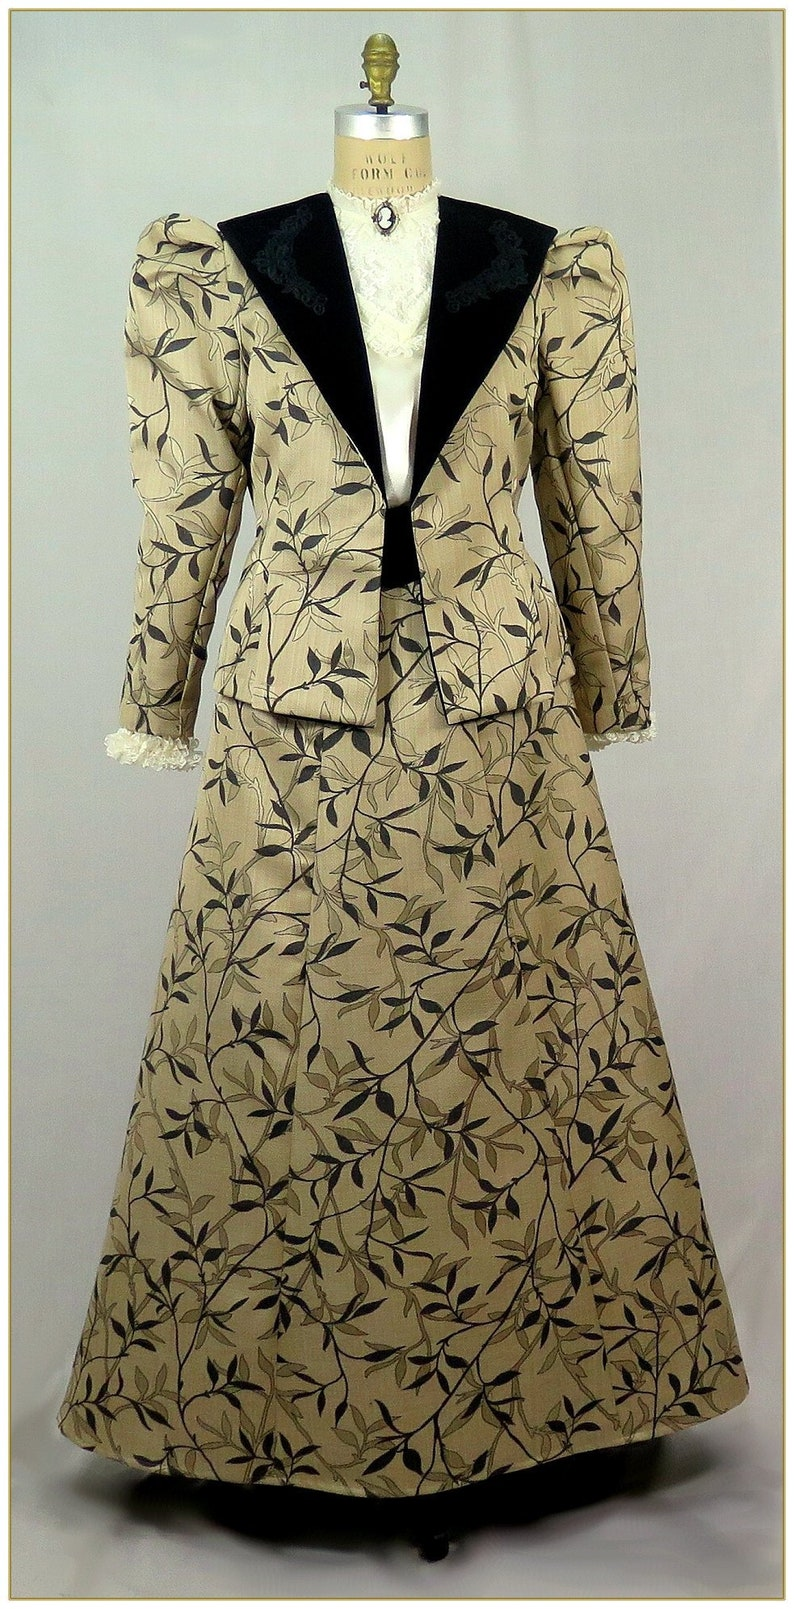 1900-1910s Clothing 1900-1910 Edwardian Victorian Leaf and Vine Jacket $92.00 AT vintagedancer.com